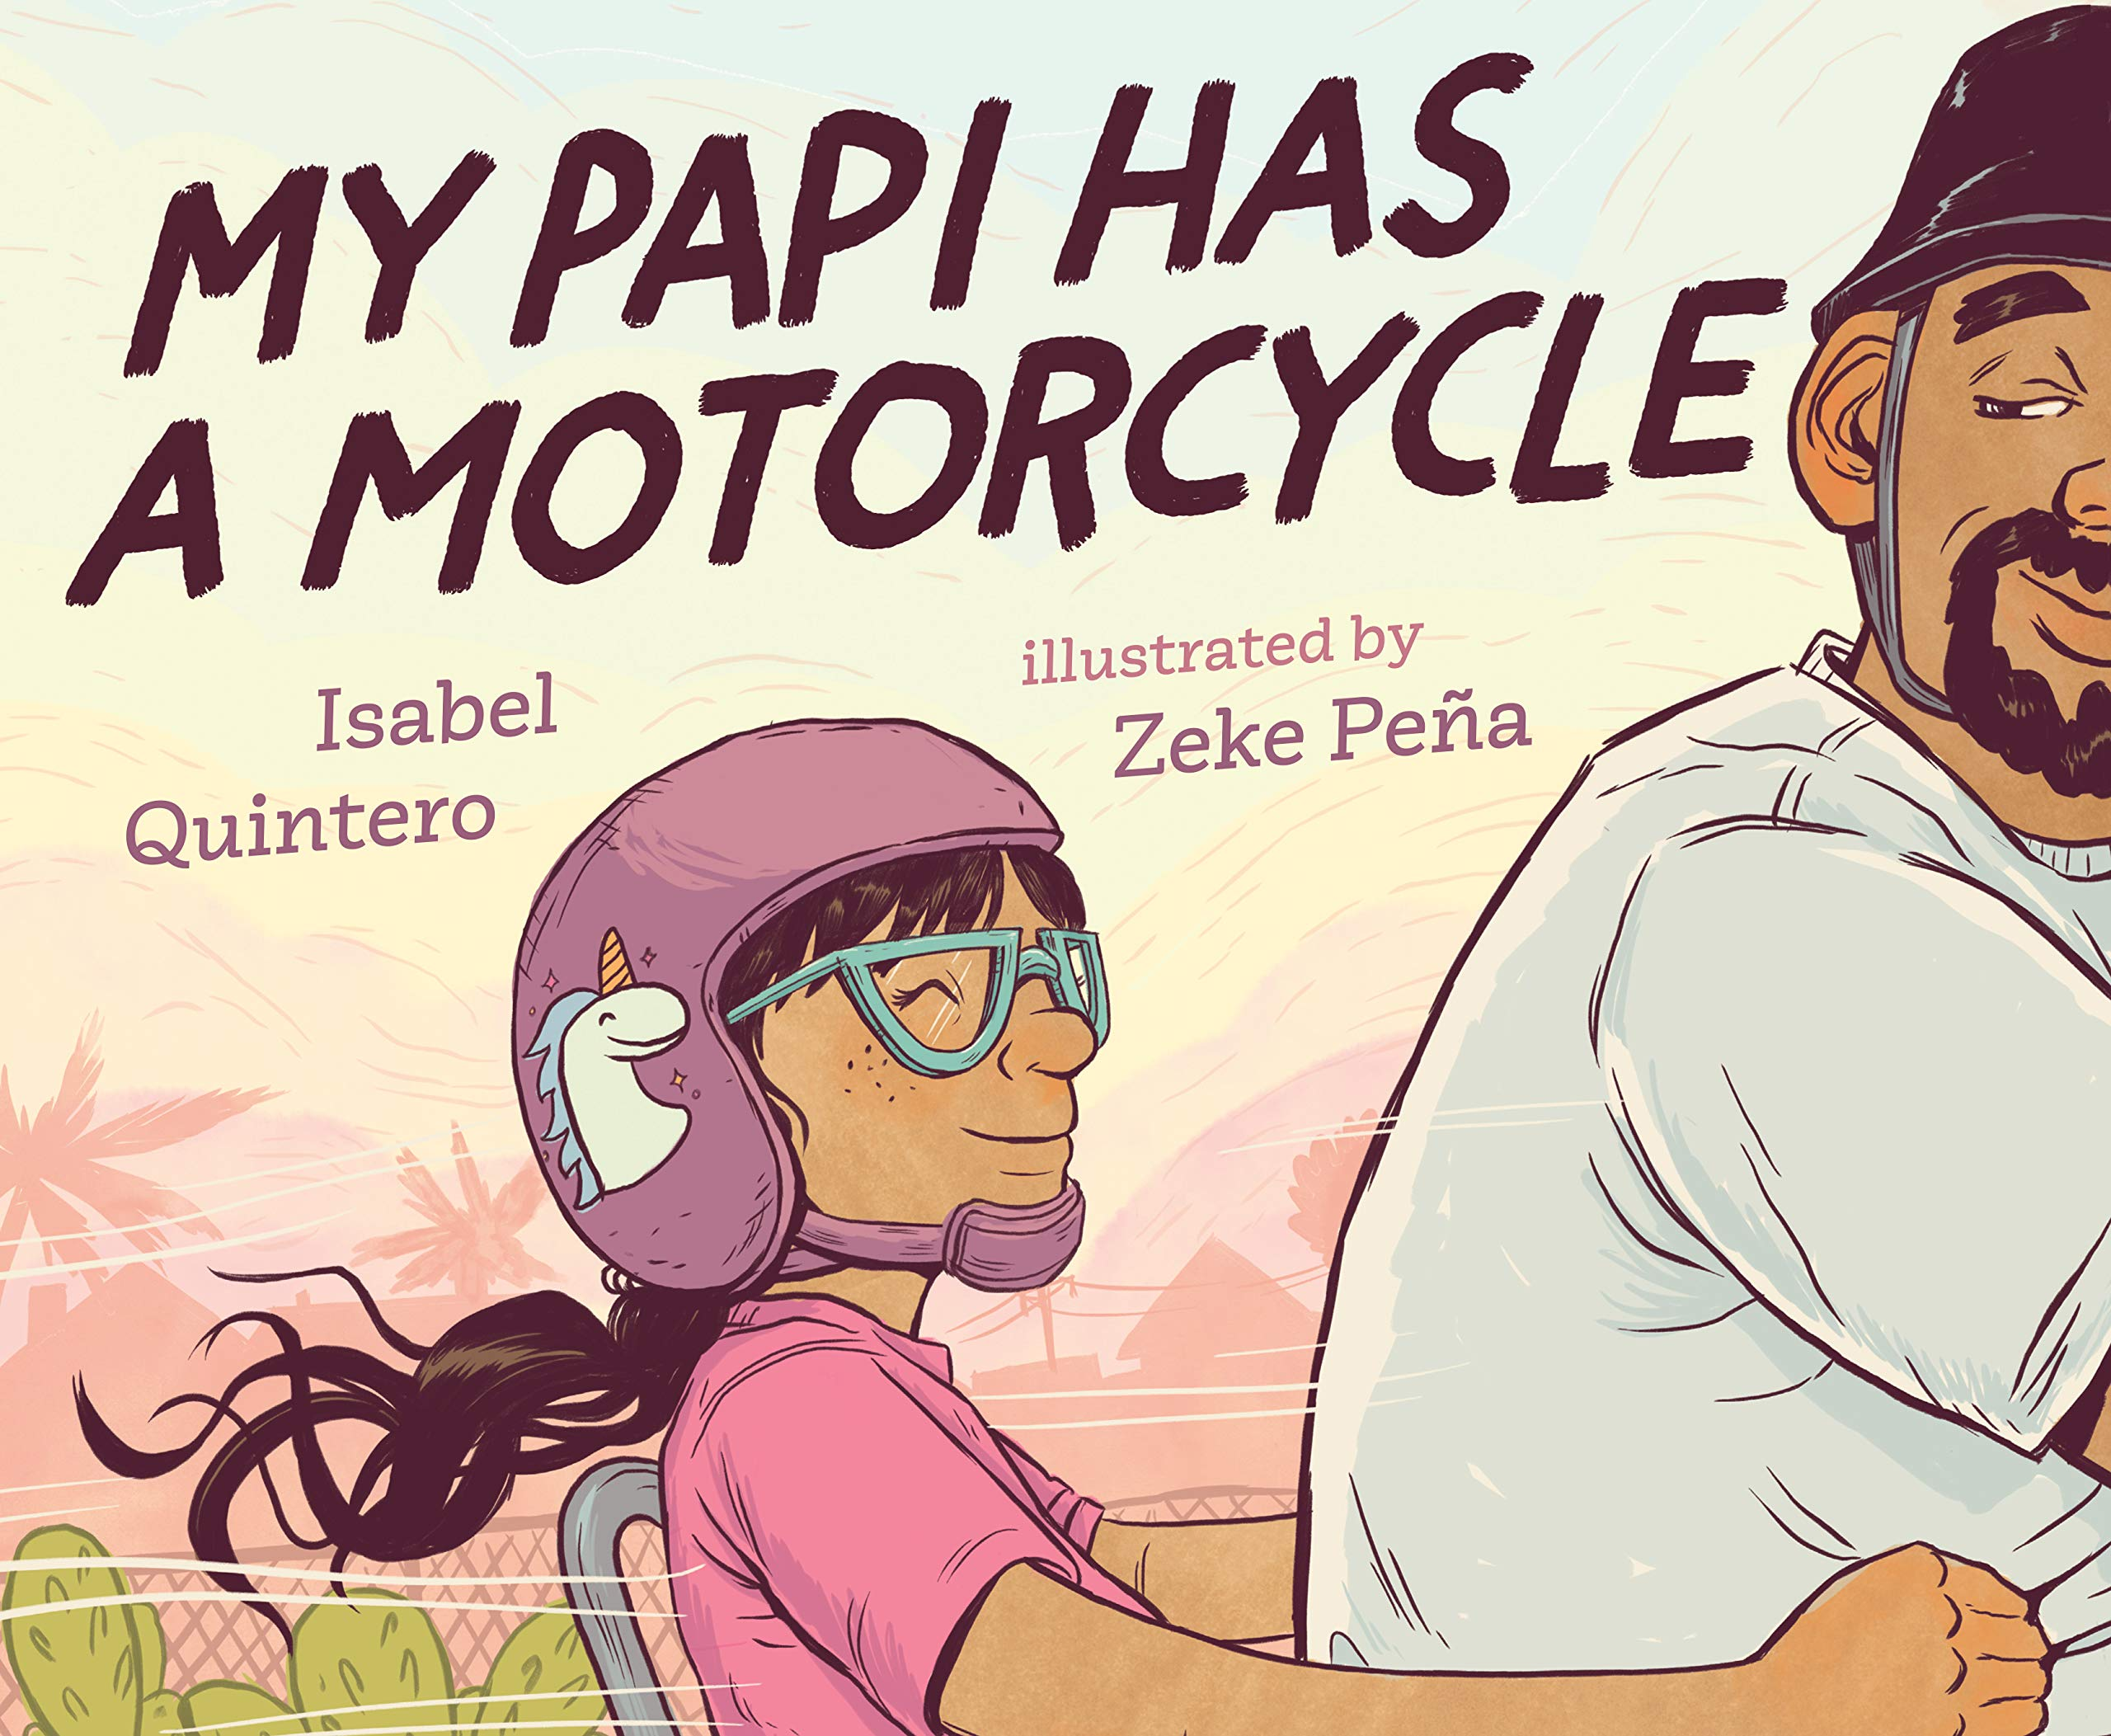 Father's Day picture books: My Papi has a Motorcycle by Isabel Quintero